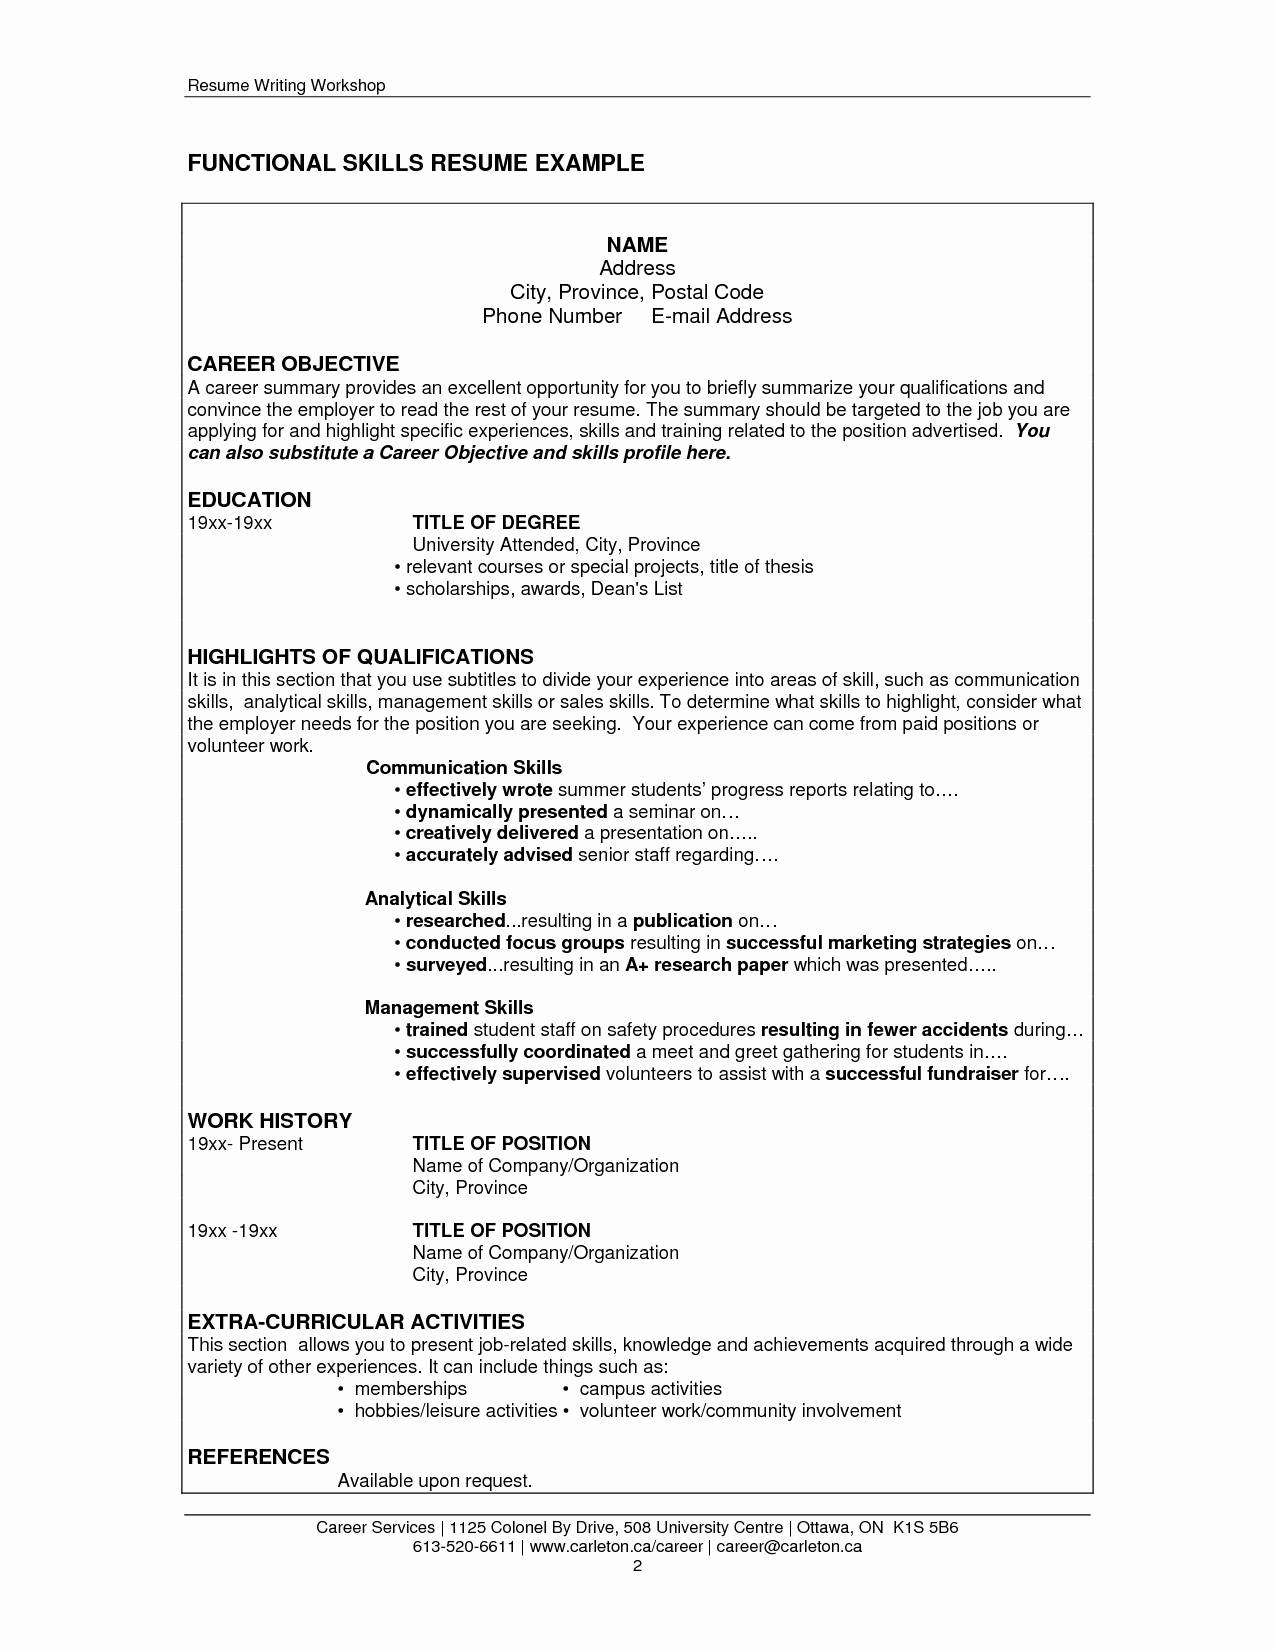 Extraordinary Resume Skills Examples Technical with